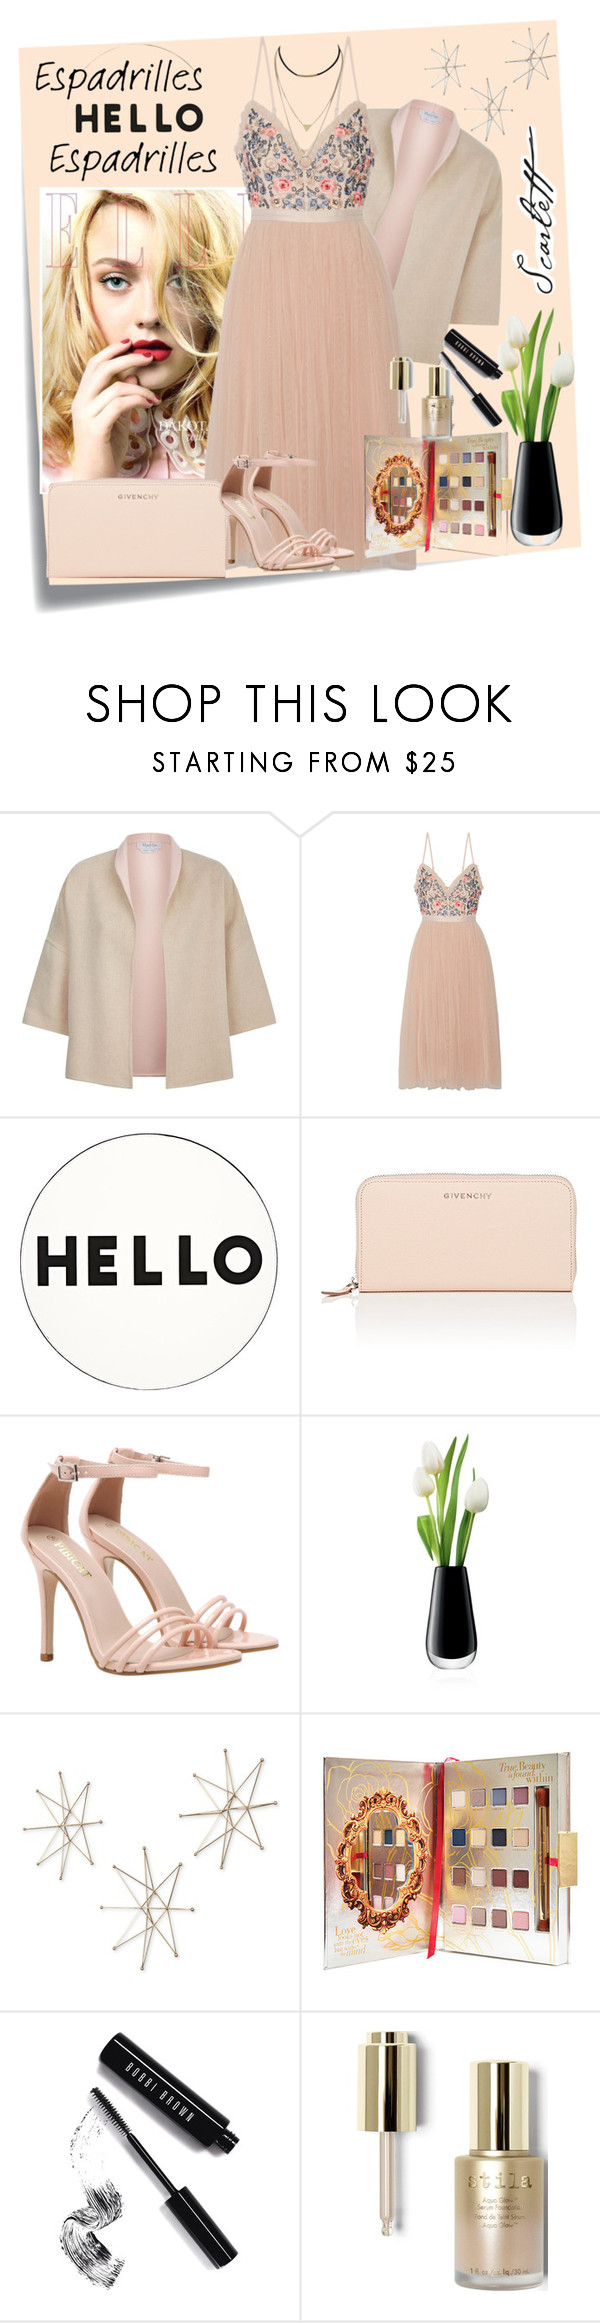 """<3"" by amila-lugavic ❤ liked on Polyvore featuring Post-It, MaxMara, Needle & Thread, Lisa Perry, Givenchy, LSA International, Uttermost, Disney, Bobbi Brown Cosmetics and Stila"